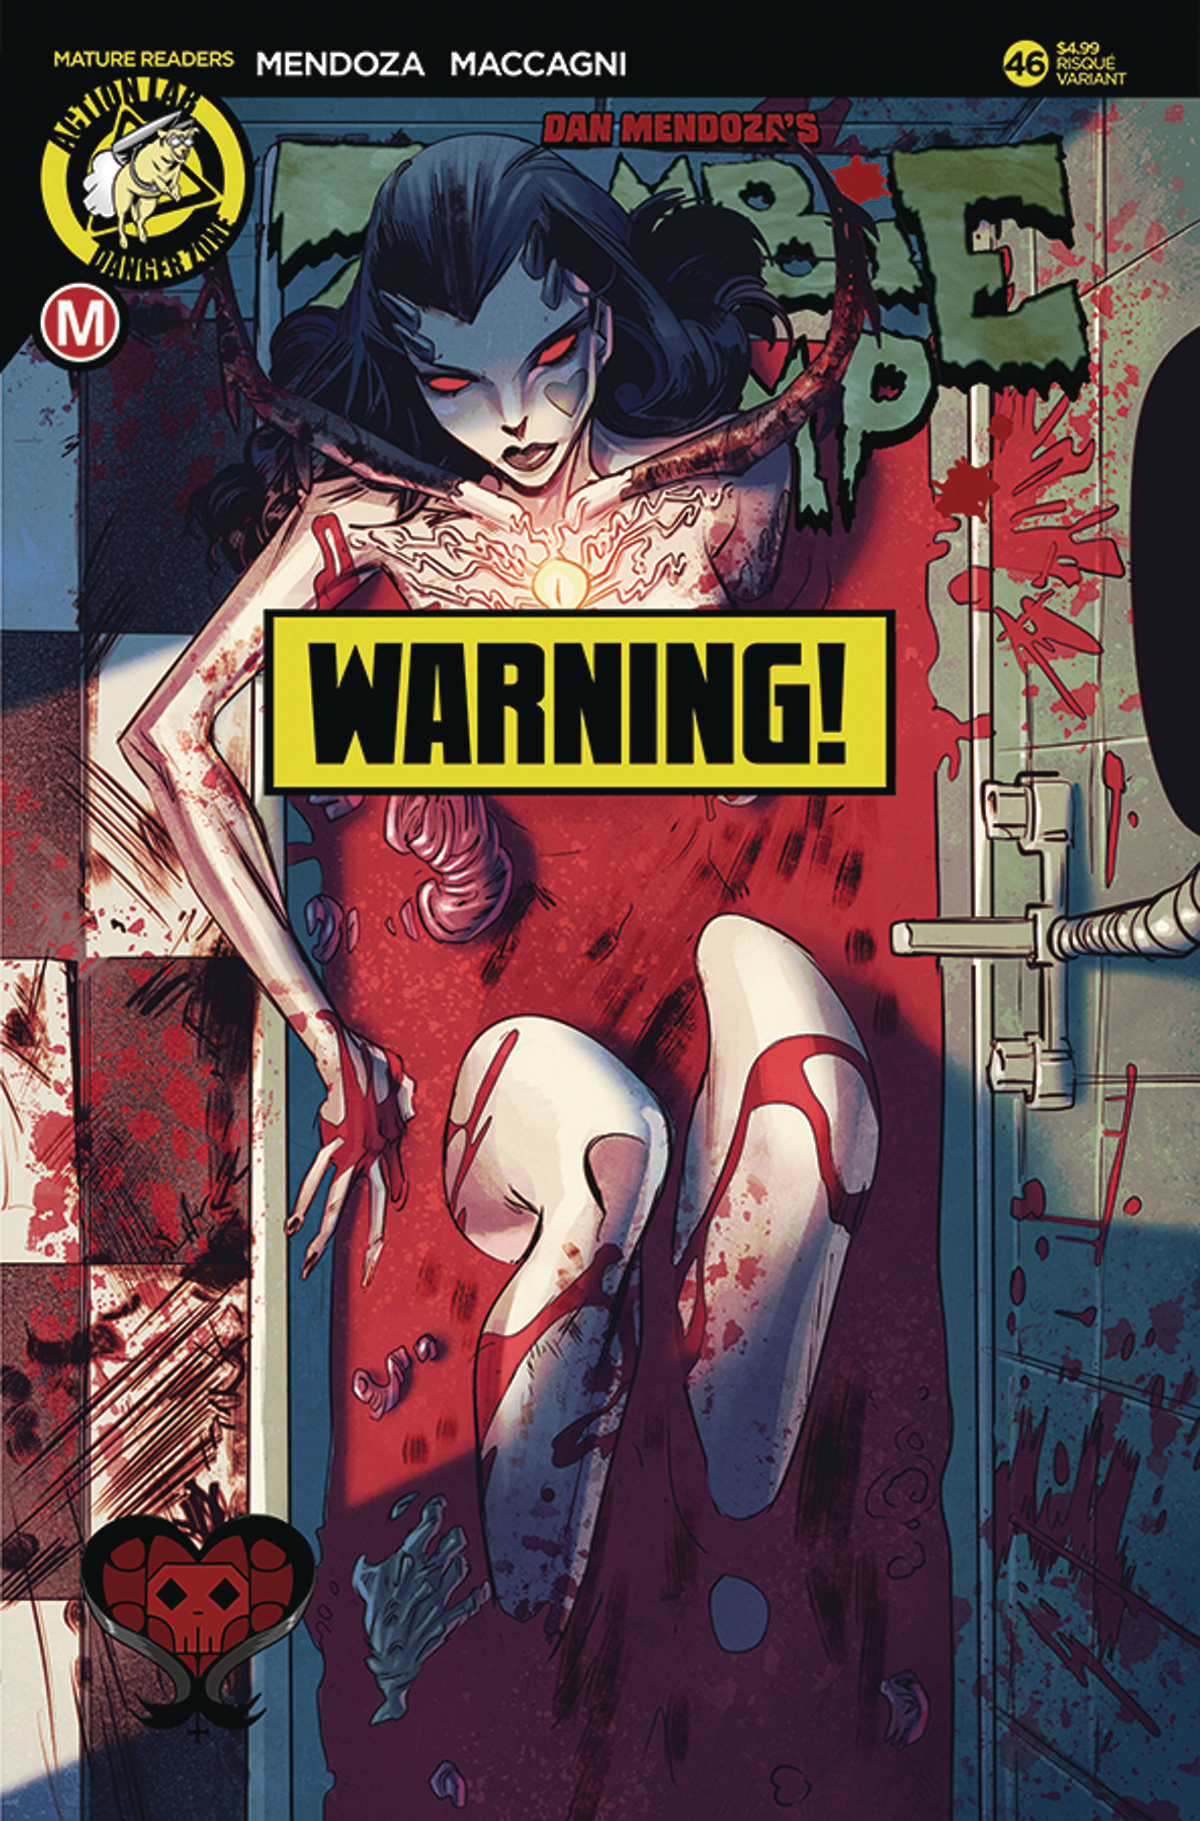 ZOMBIE TRAMP ONGOING #46 CVR B CELOR RISQUE (MR)